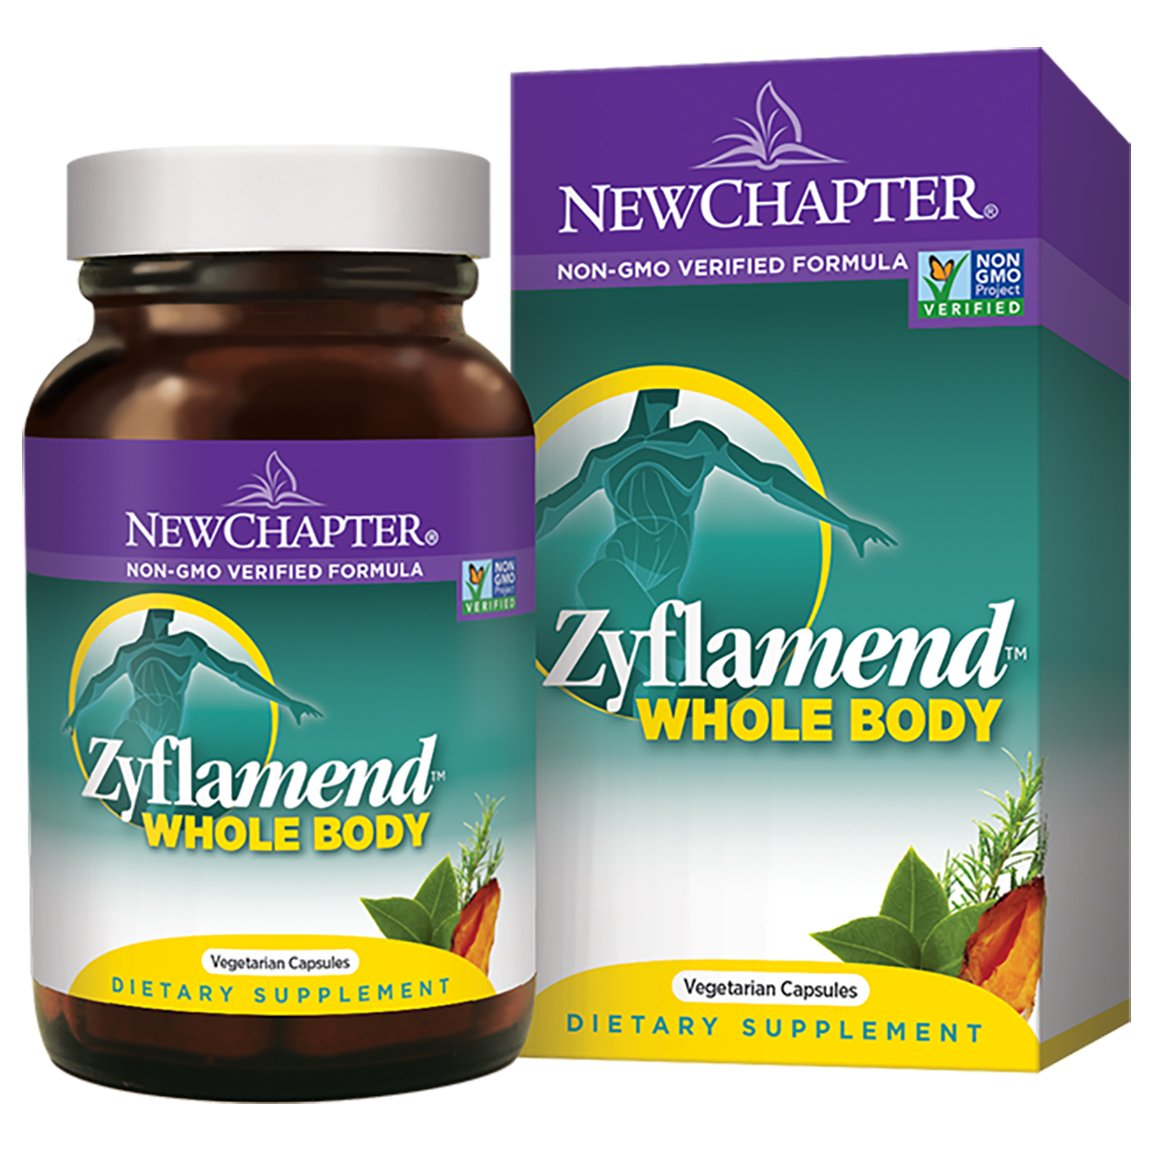 New Chapter Zyflamend Whole Body packaging